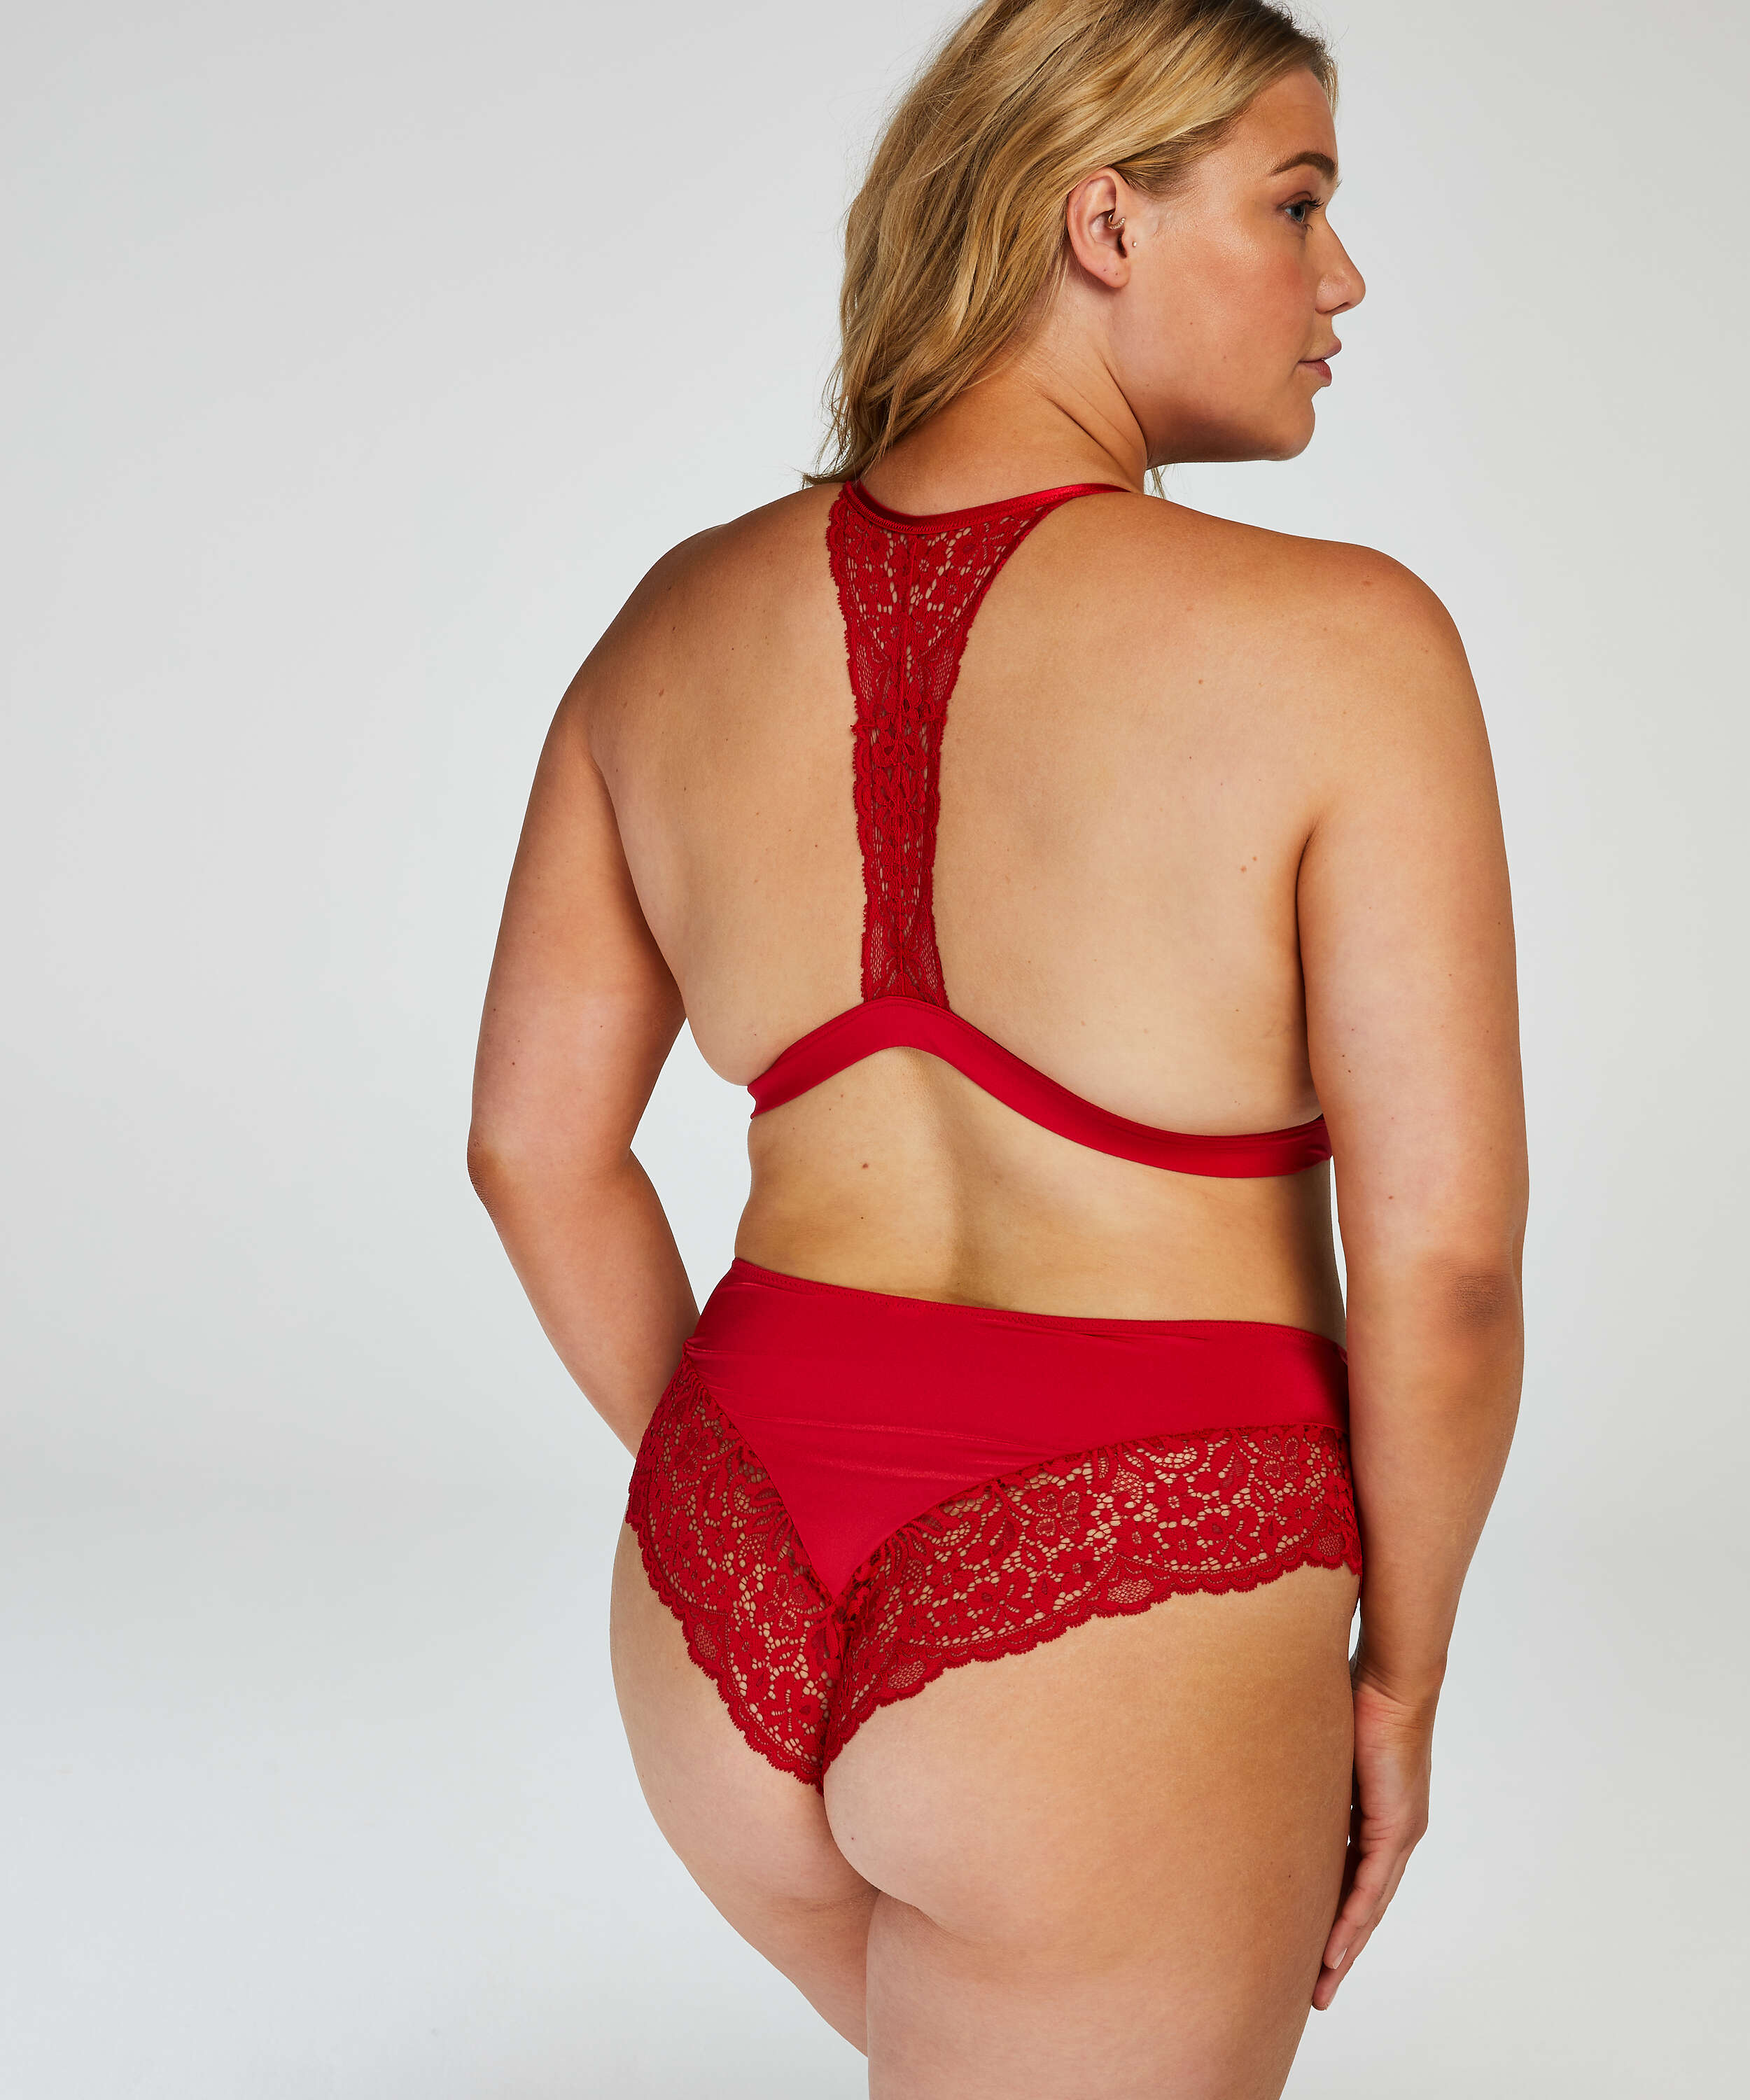 Rose Padded Triangle Bralette, Red, main